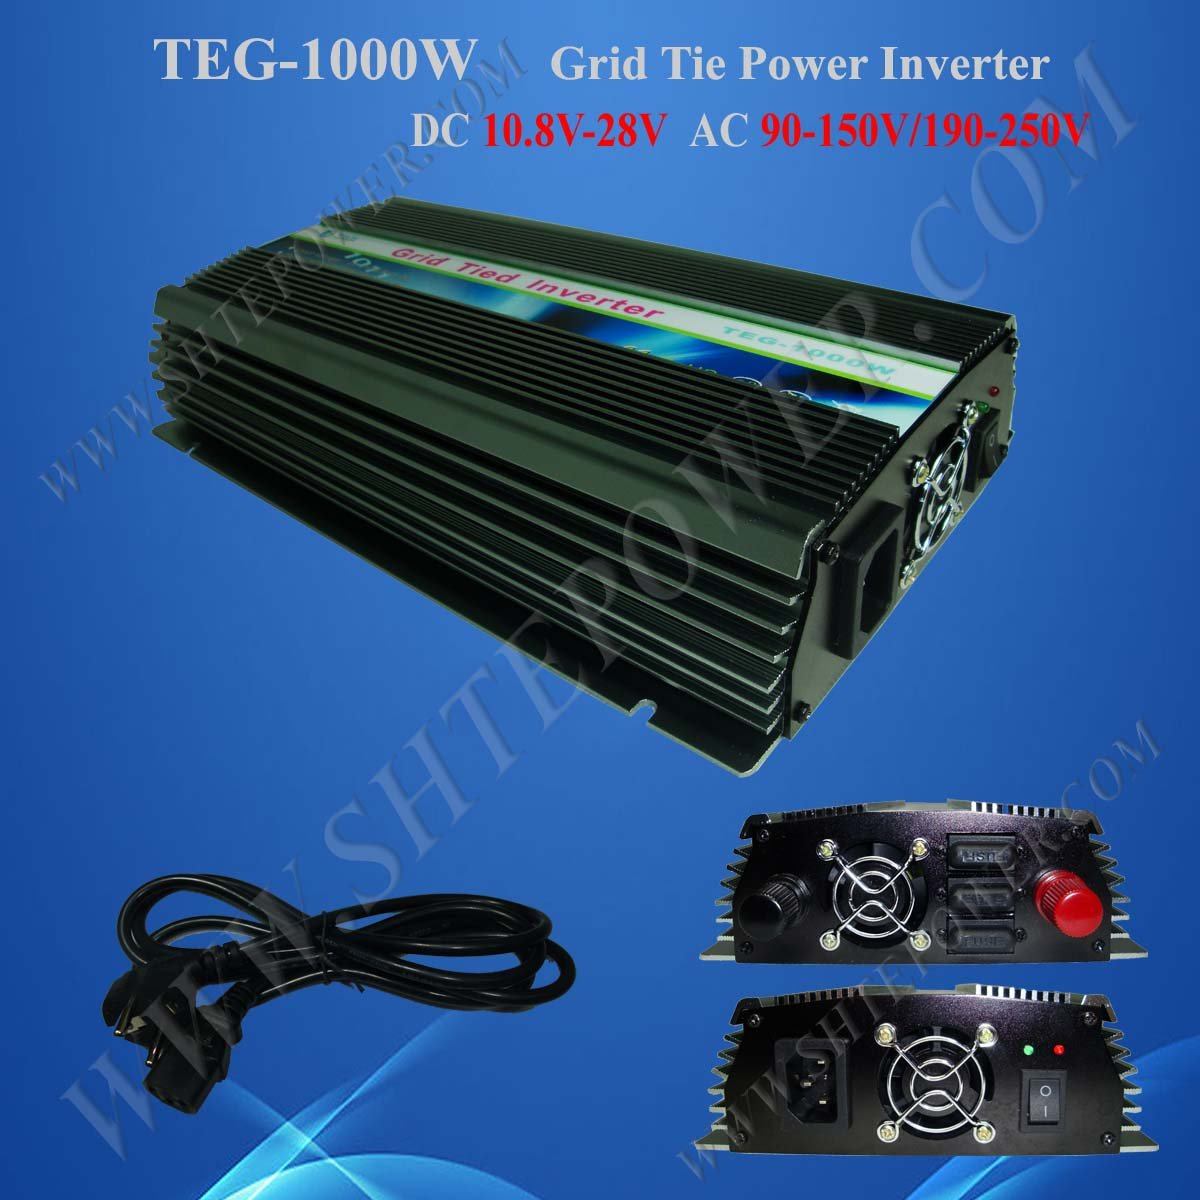 1000w grid tie solar inverter dc to ac 1kw grid tie inverter 220v 24v grid tie inverter 1kw grid tie solar module power dc to ac inverter